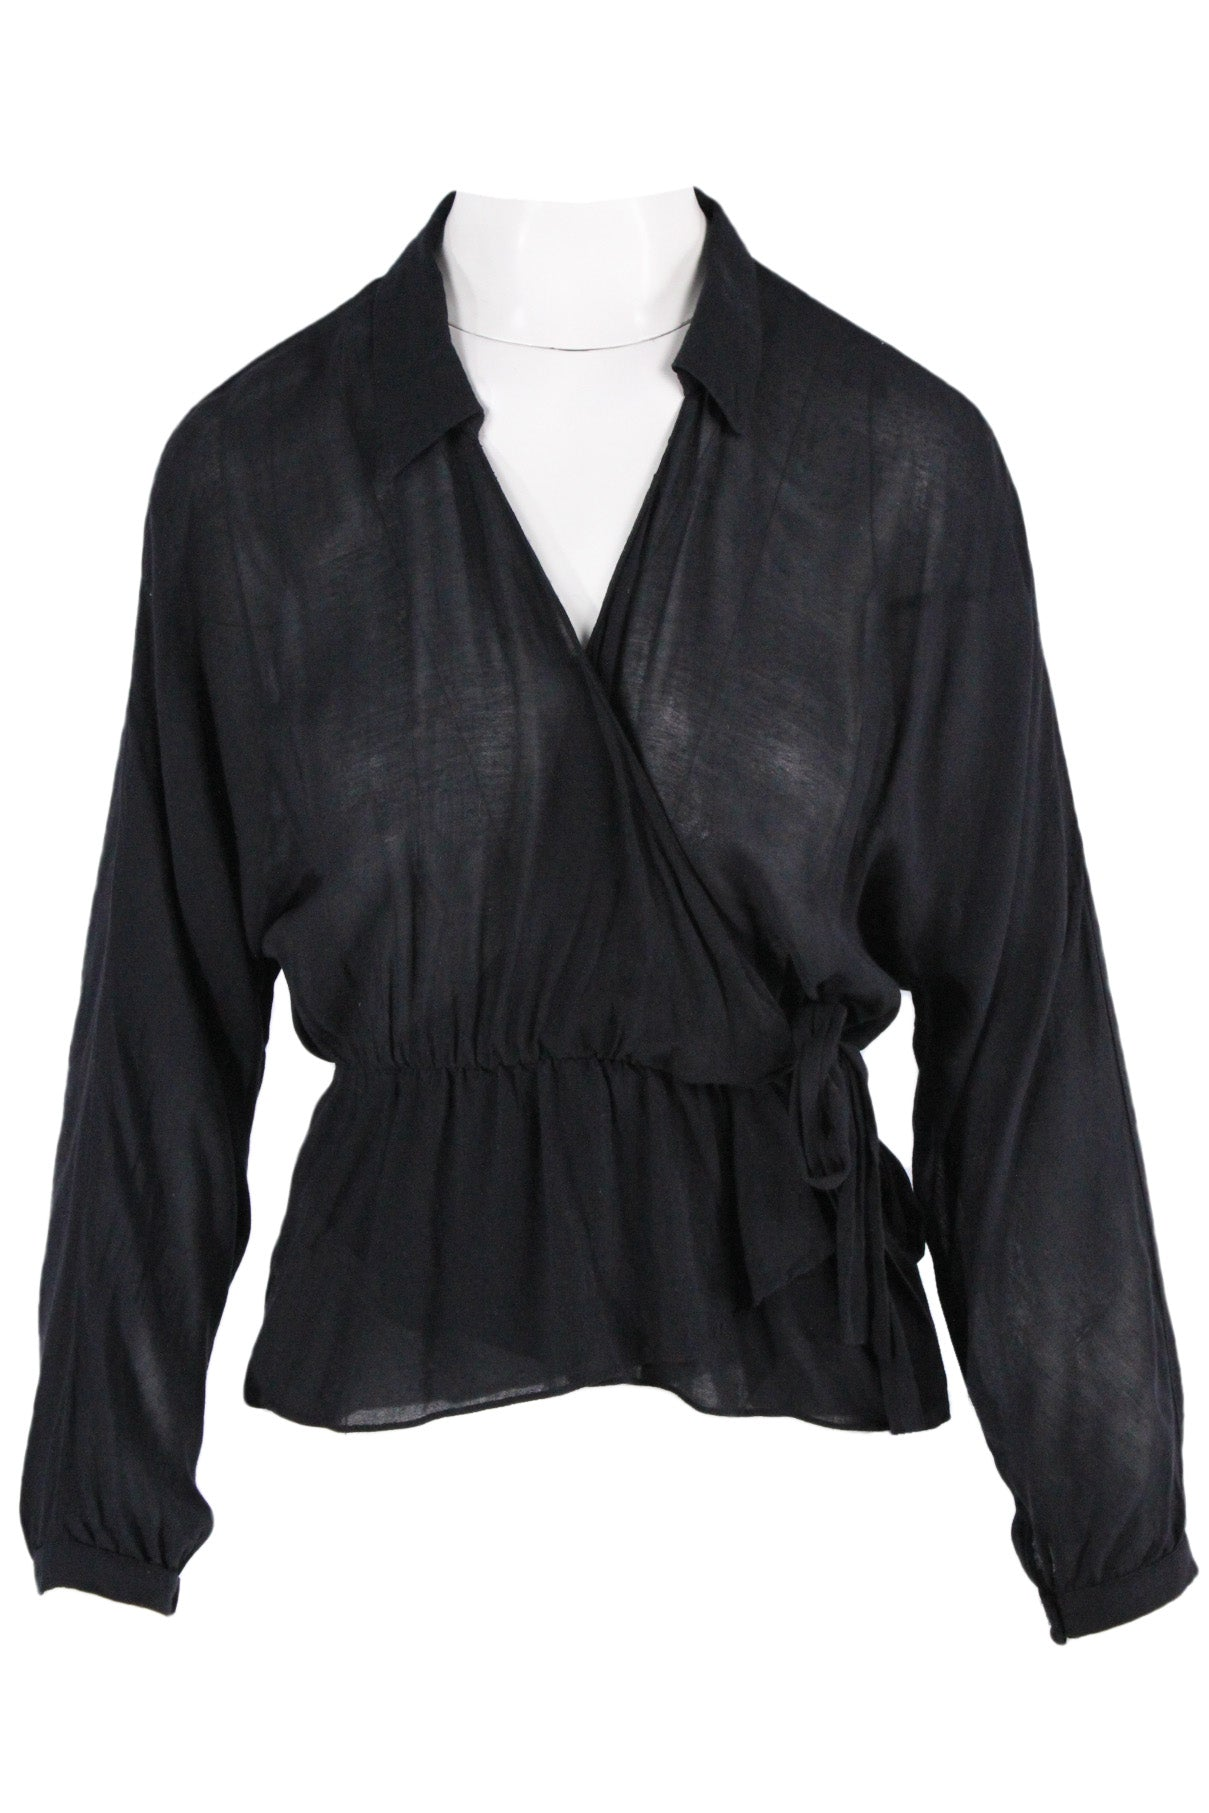 zara black sheer dolman sleeve blouse. featuring collared v-neckline, wrist cuffs with button closure, and faux wrap silhouette with elastic waist and  tie at side.